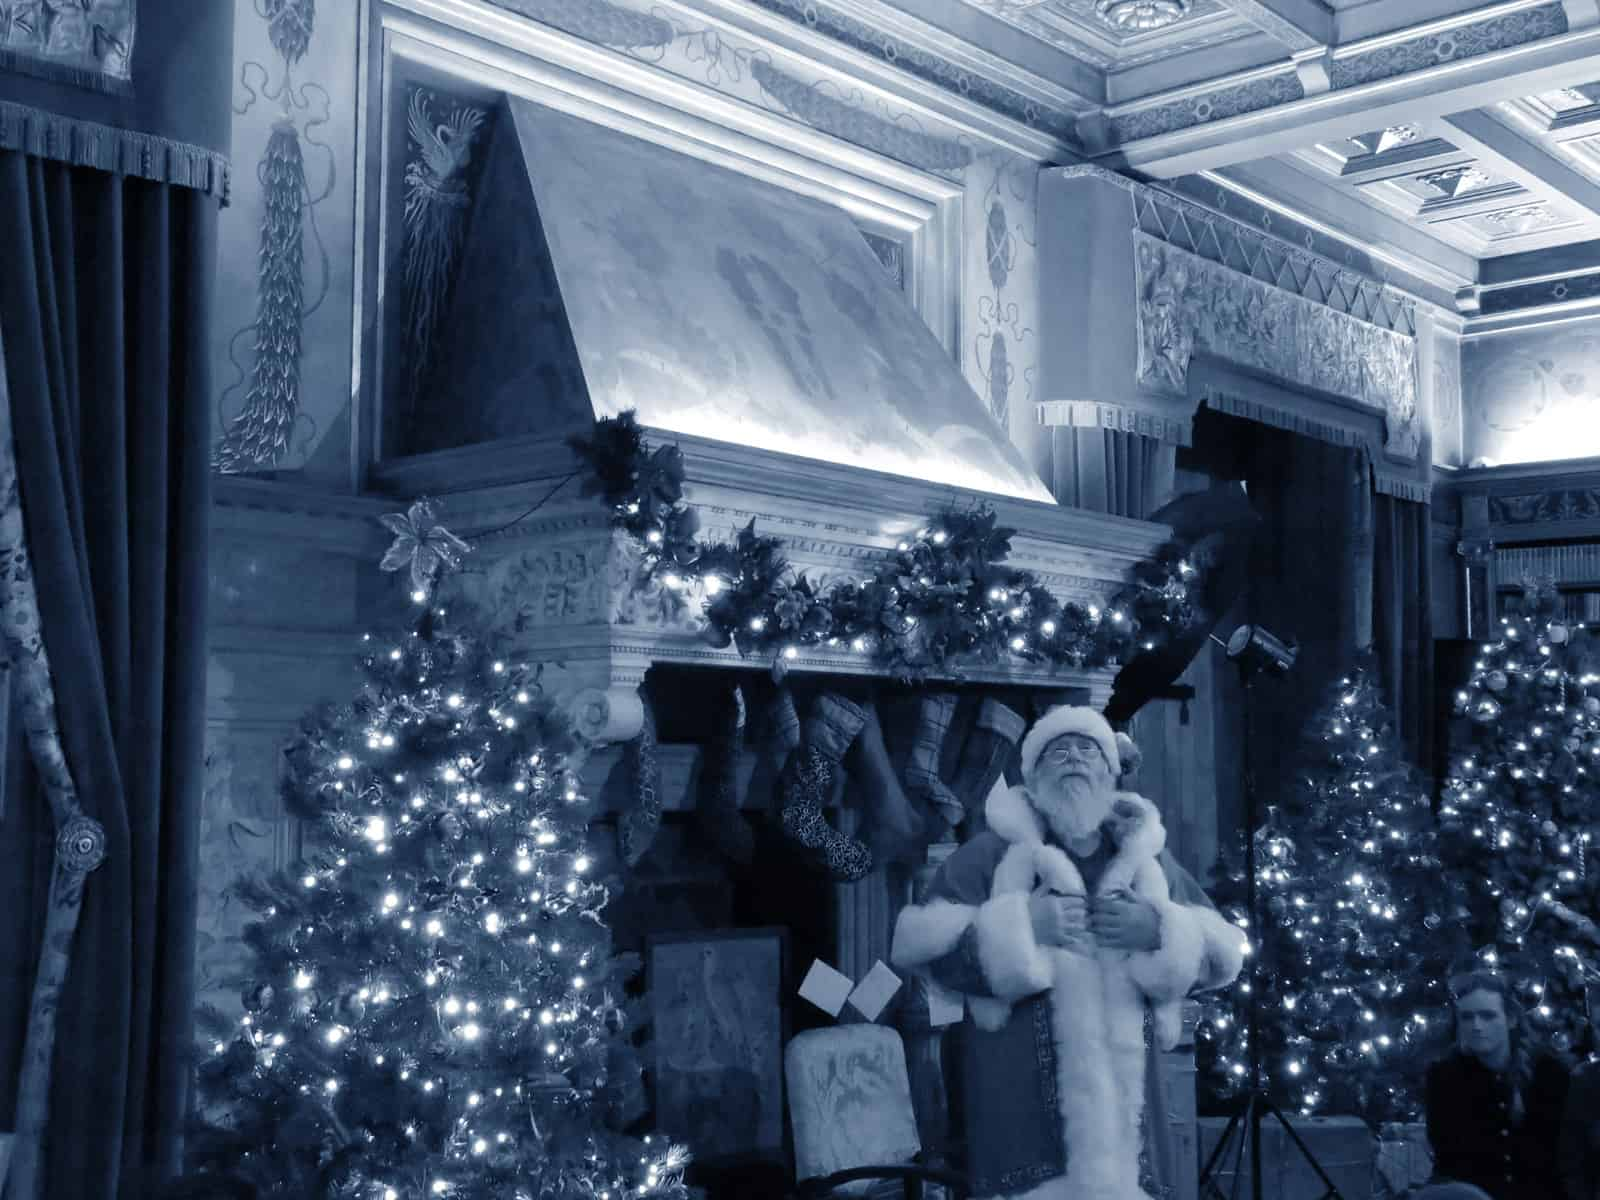 Black and white photo of Santa standing in front of a fireplace looking up. The room is decorated with Christmas trees and stockings and lights are on top of the fireplace.